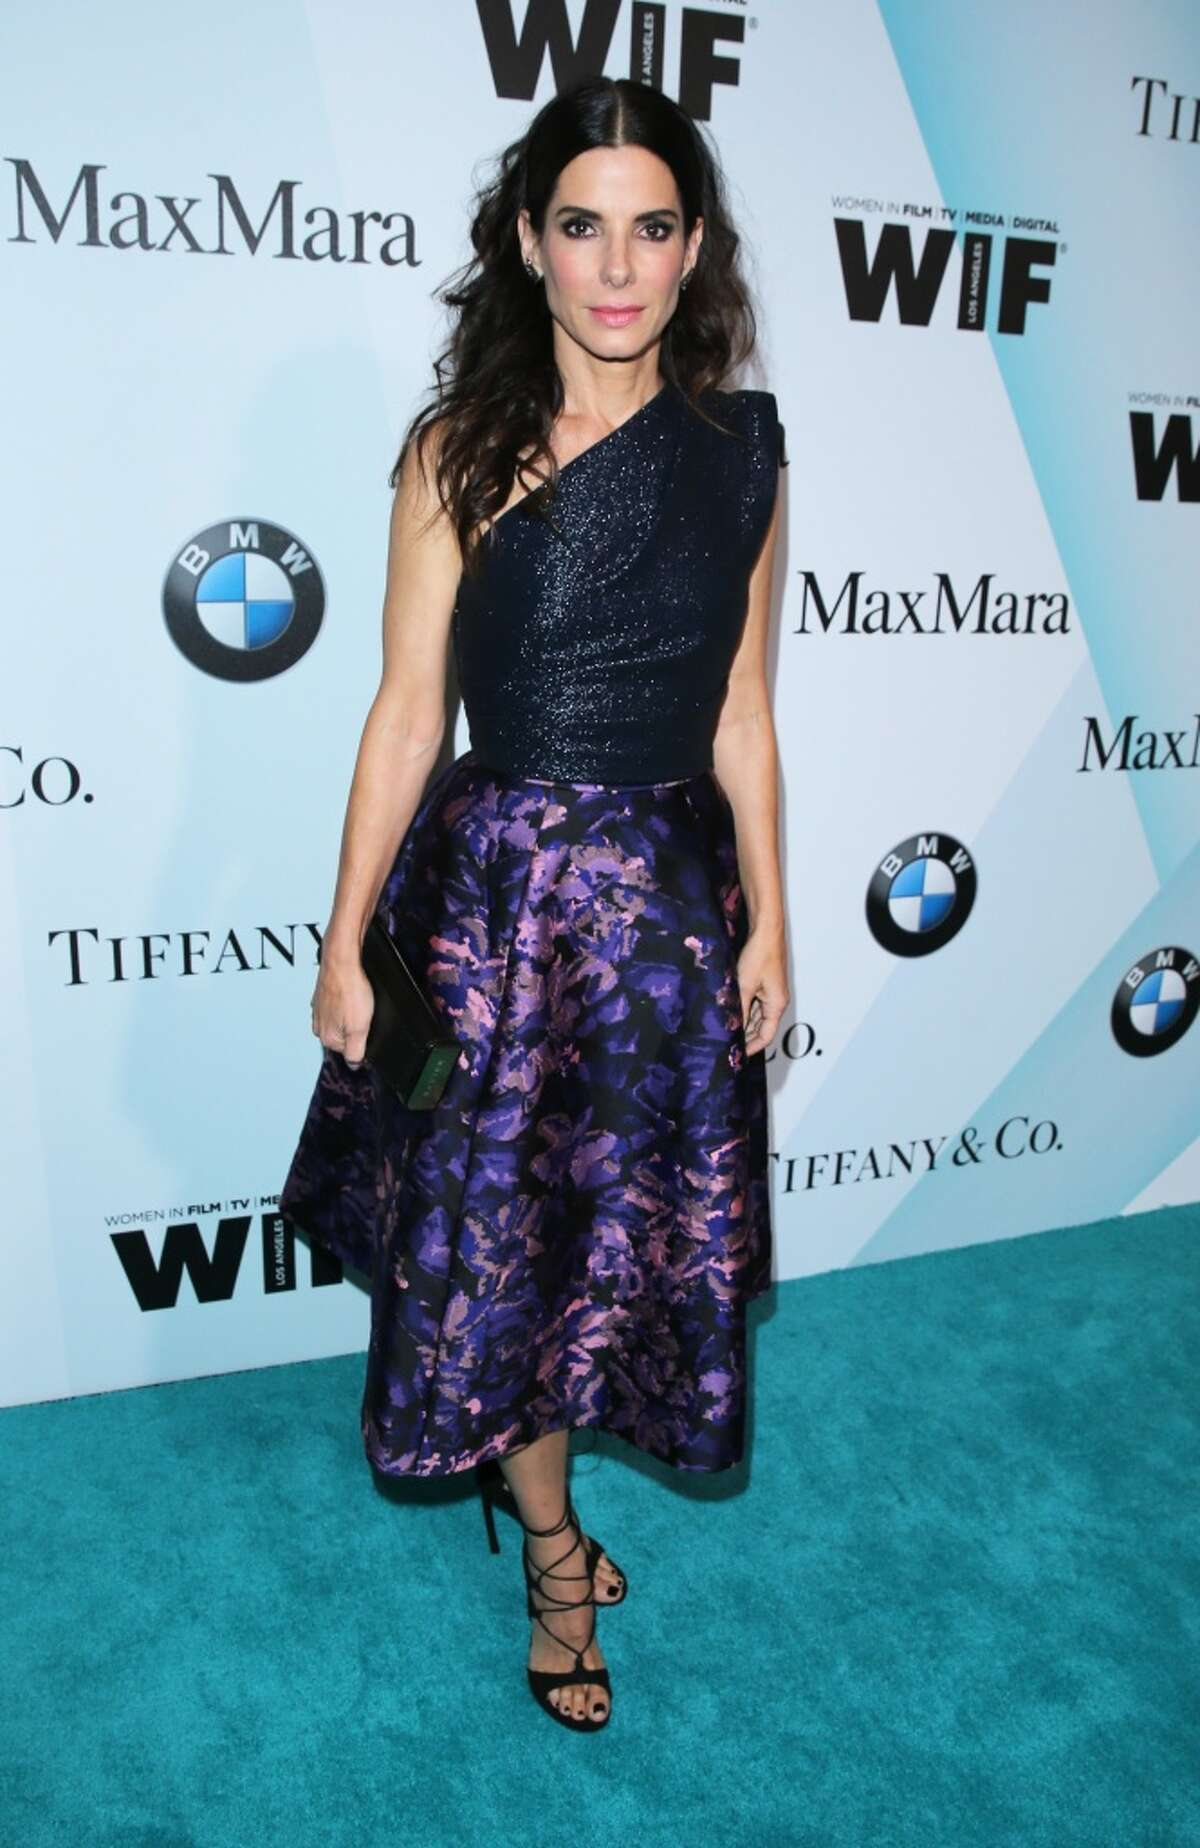 Actress Sandra Bullock, wearing Tiffany & Co., attends the Women In Film 2015 Crystal + Lucy Awards at the Hyatt Regency Century Plaza on June 16, 2015 in Century City, California. (Photo by Mark Davis/Getty Images for Women in Film)